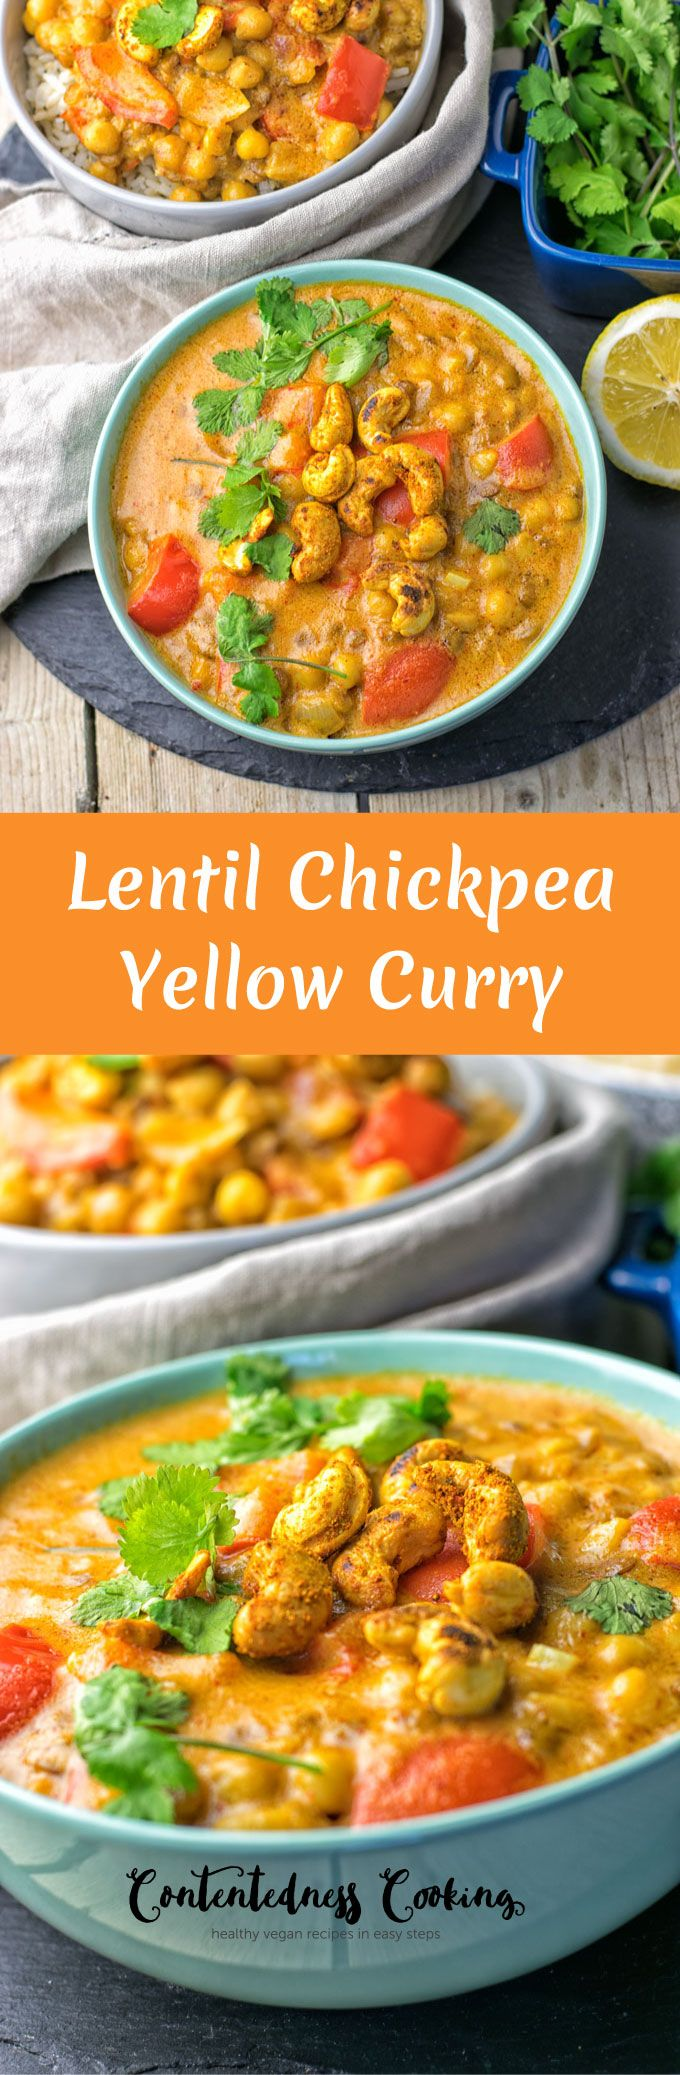 This Lentil Chickpea Yellow Curry is vegan and glutenfree and you can make it with just 6 ingredients in 2 easy steps.